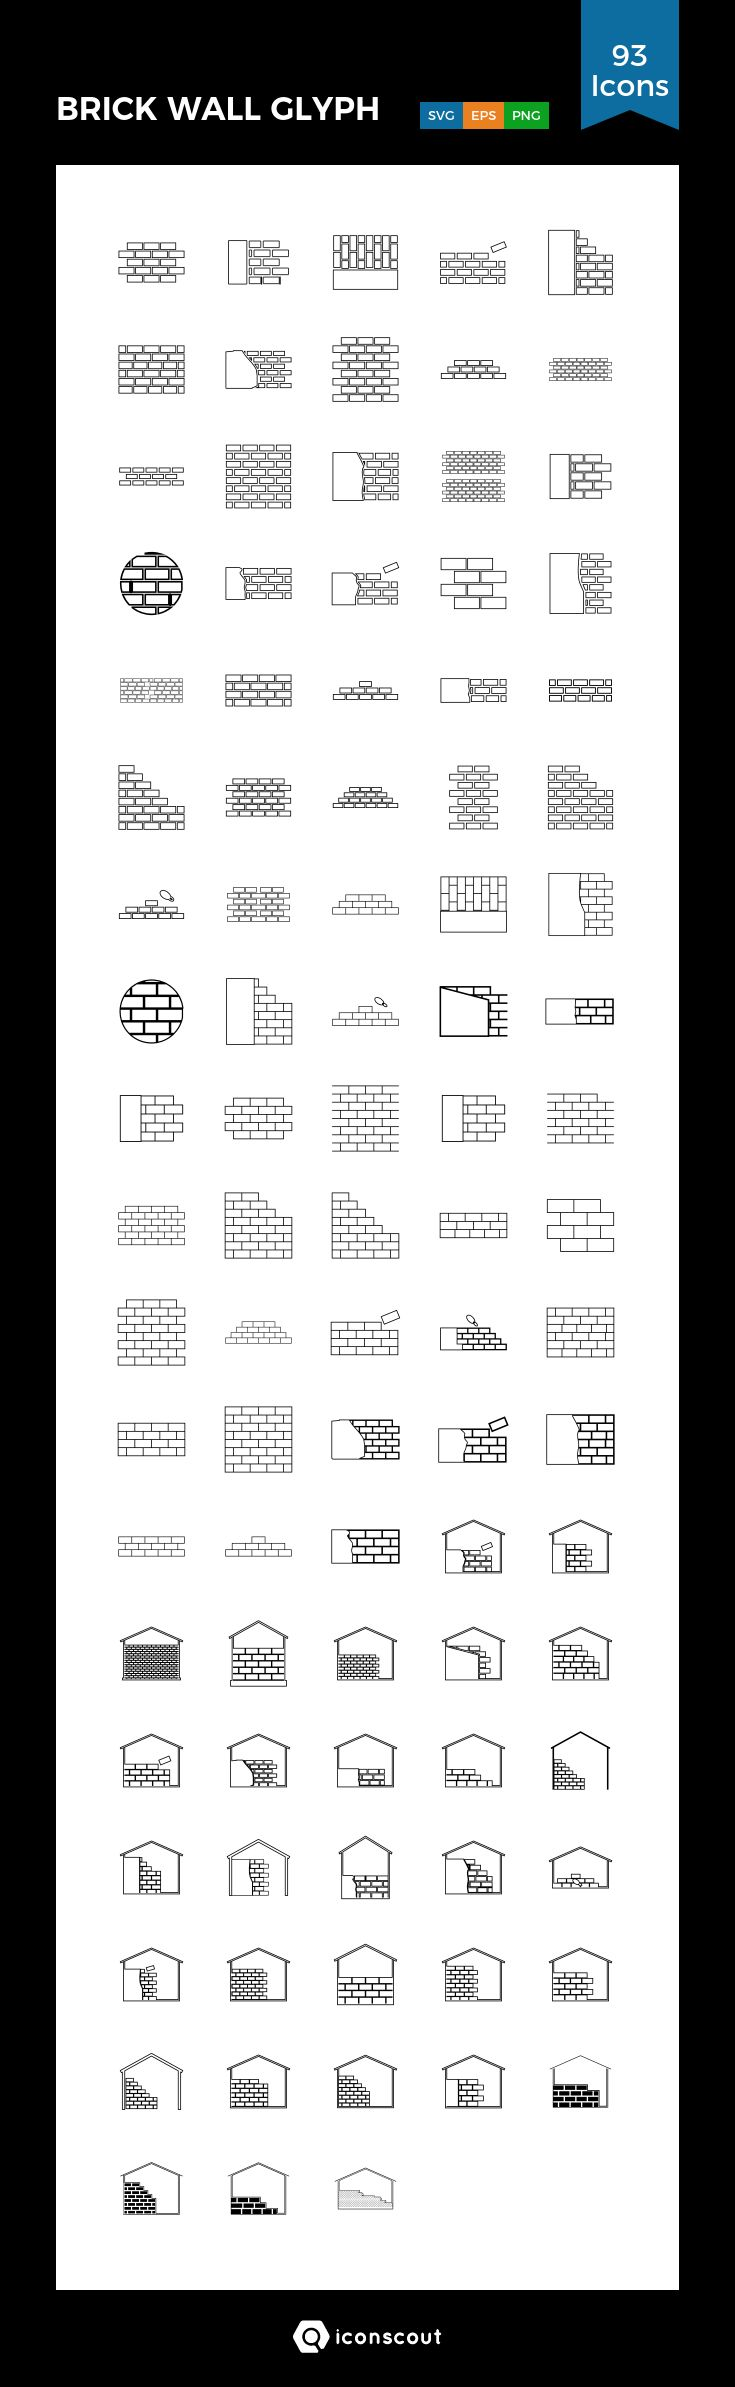 BRICK WALL GLYPH  Icon Pack - 93 Line Icons